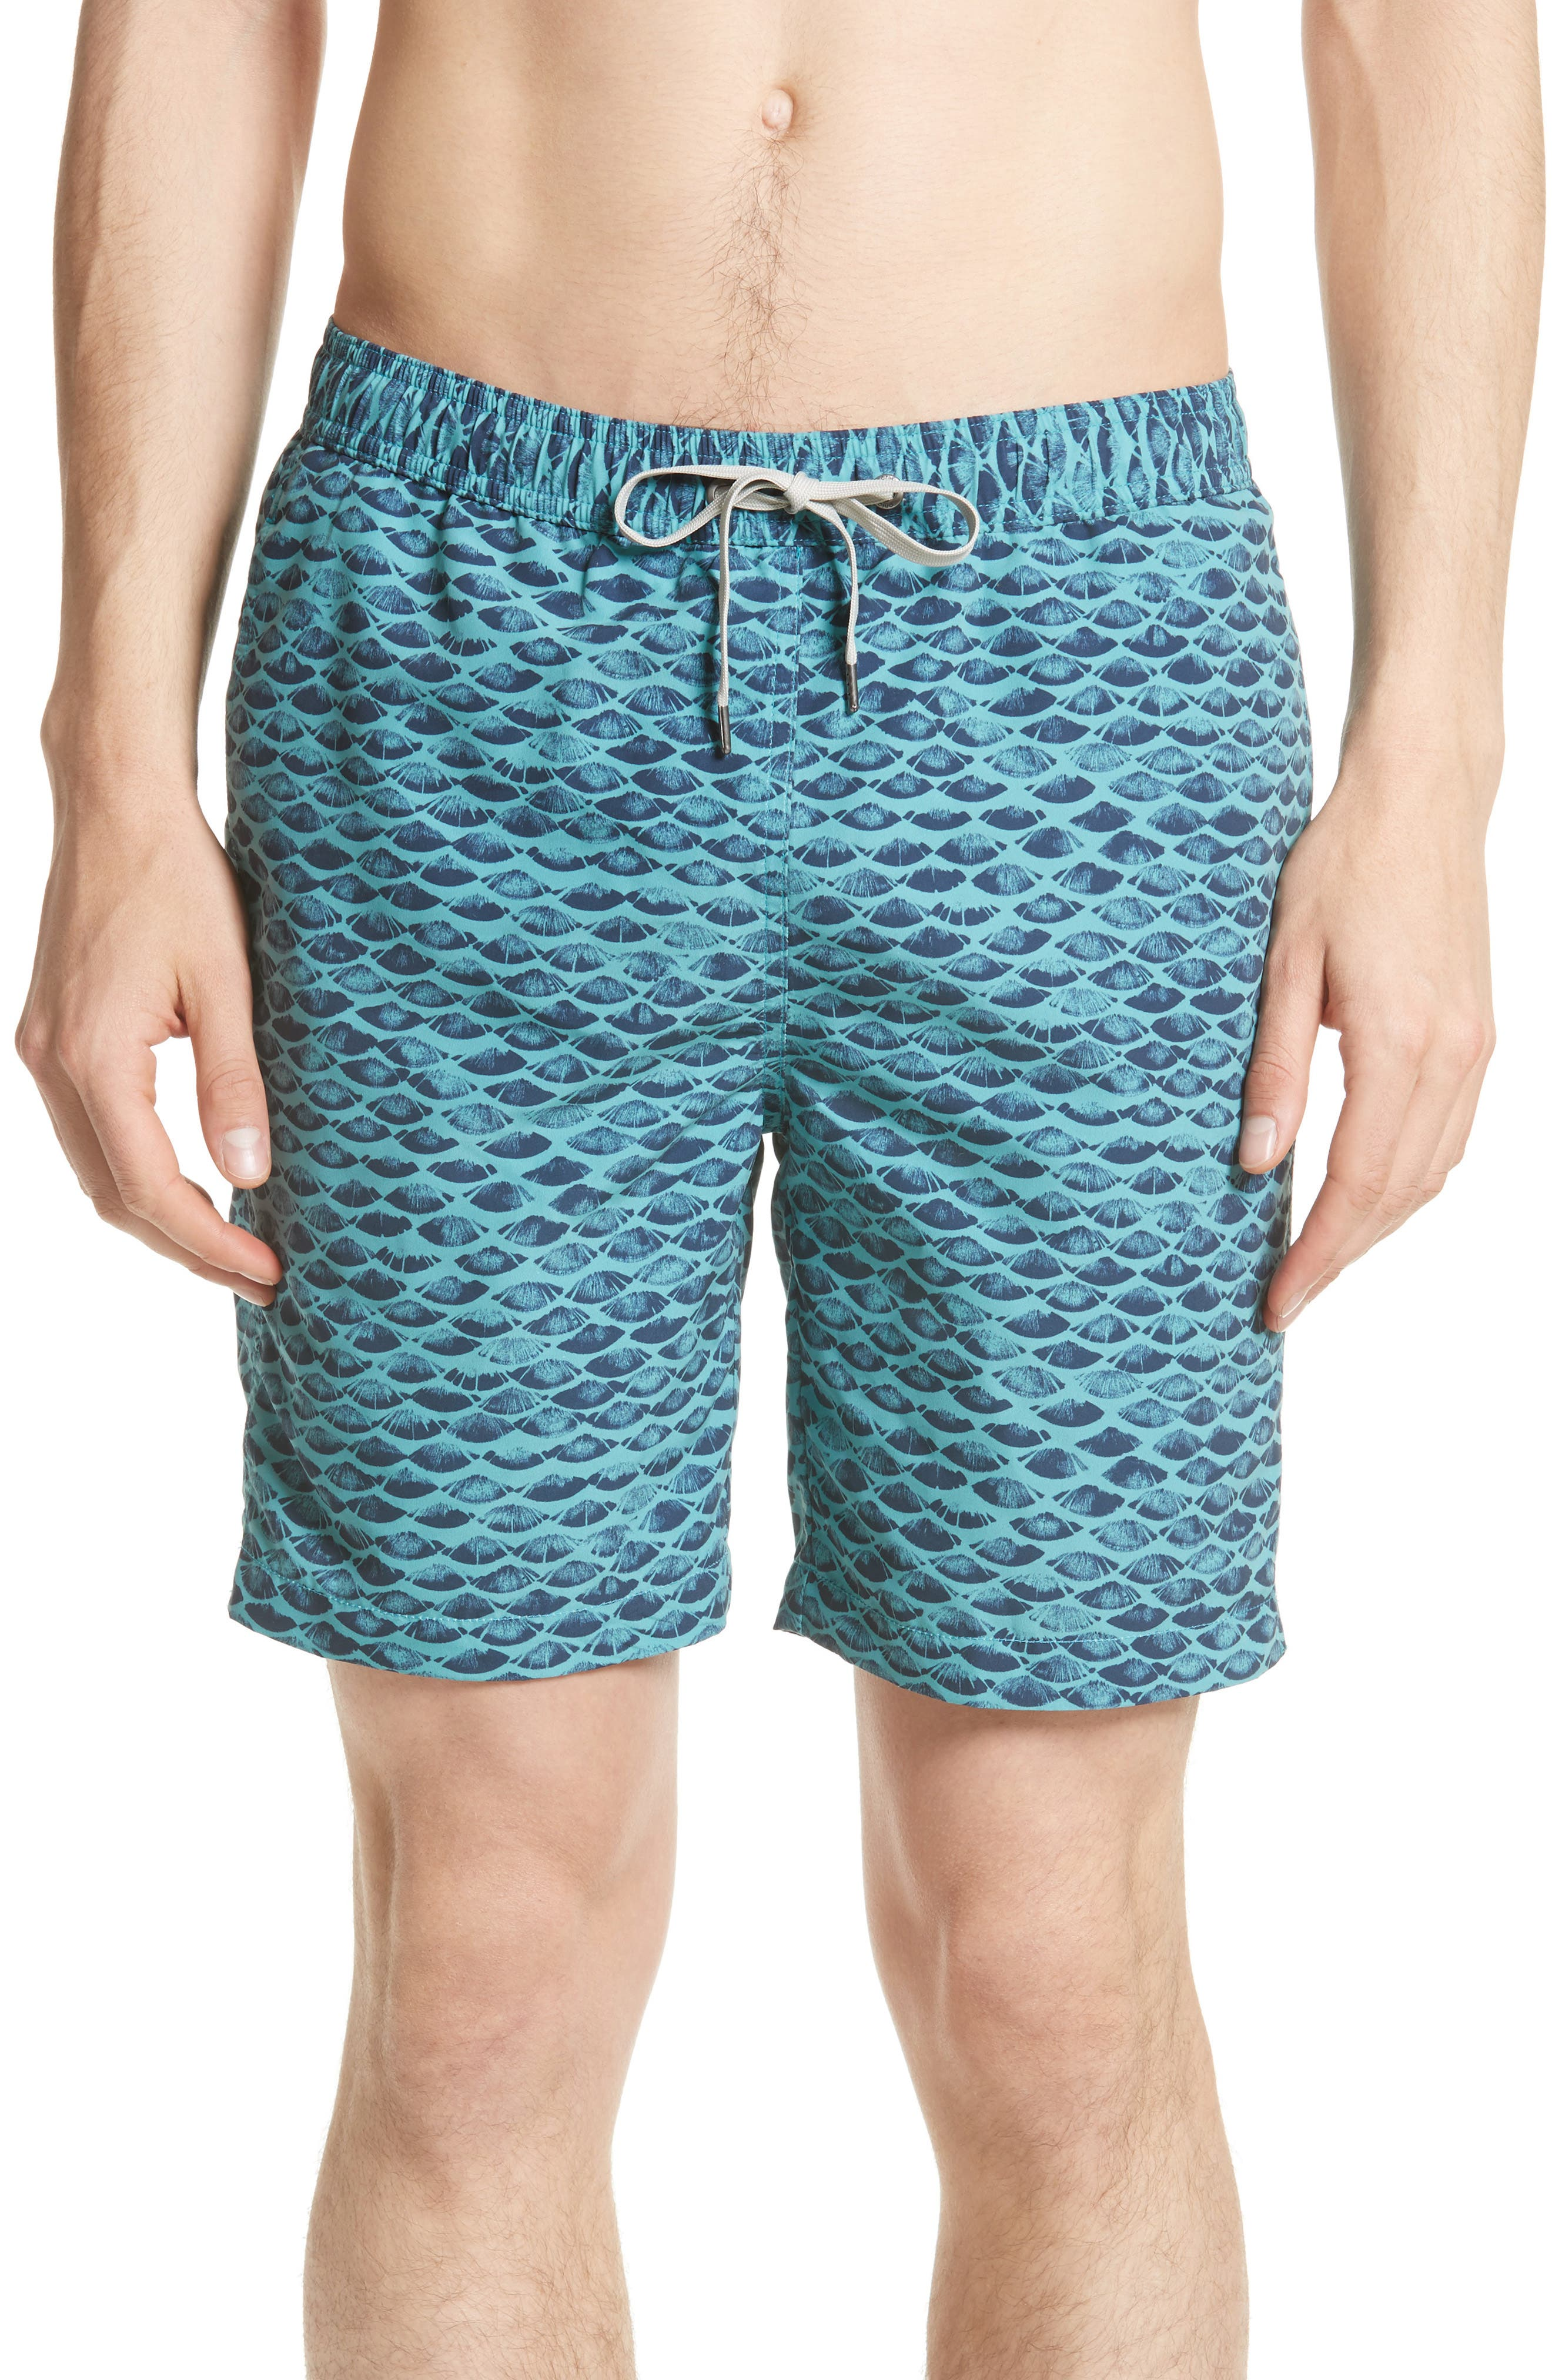 Charles Scales Swim Trunks,                             Main thumbnail 1, color,                             464